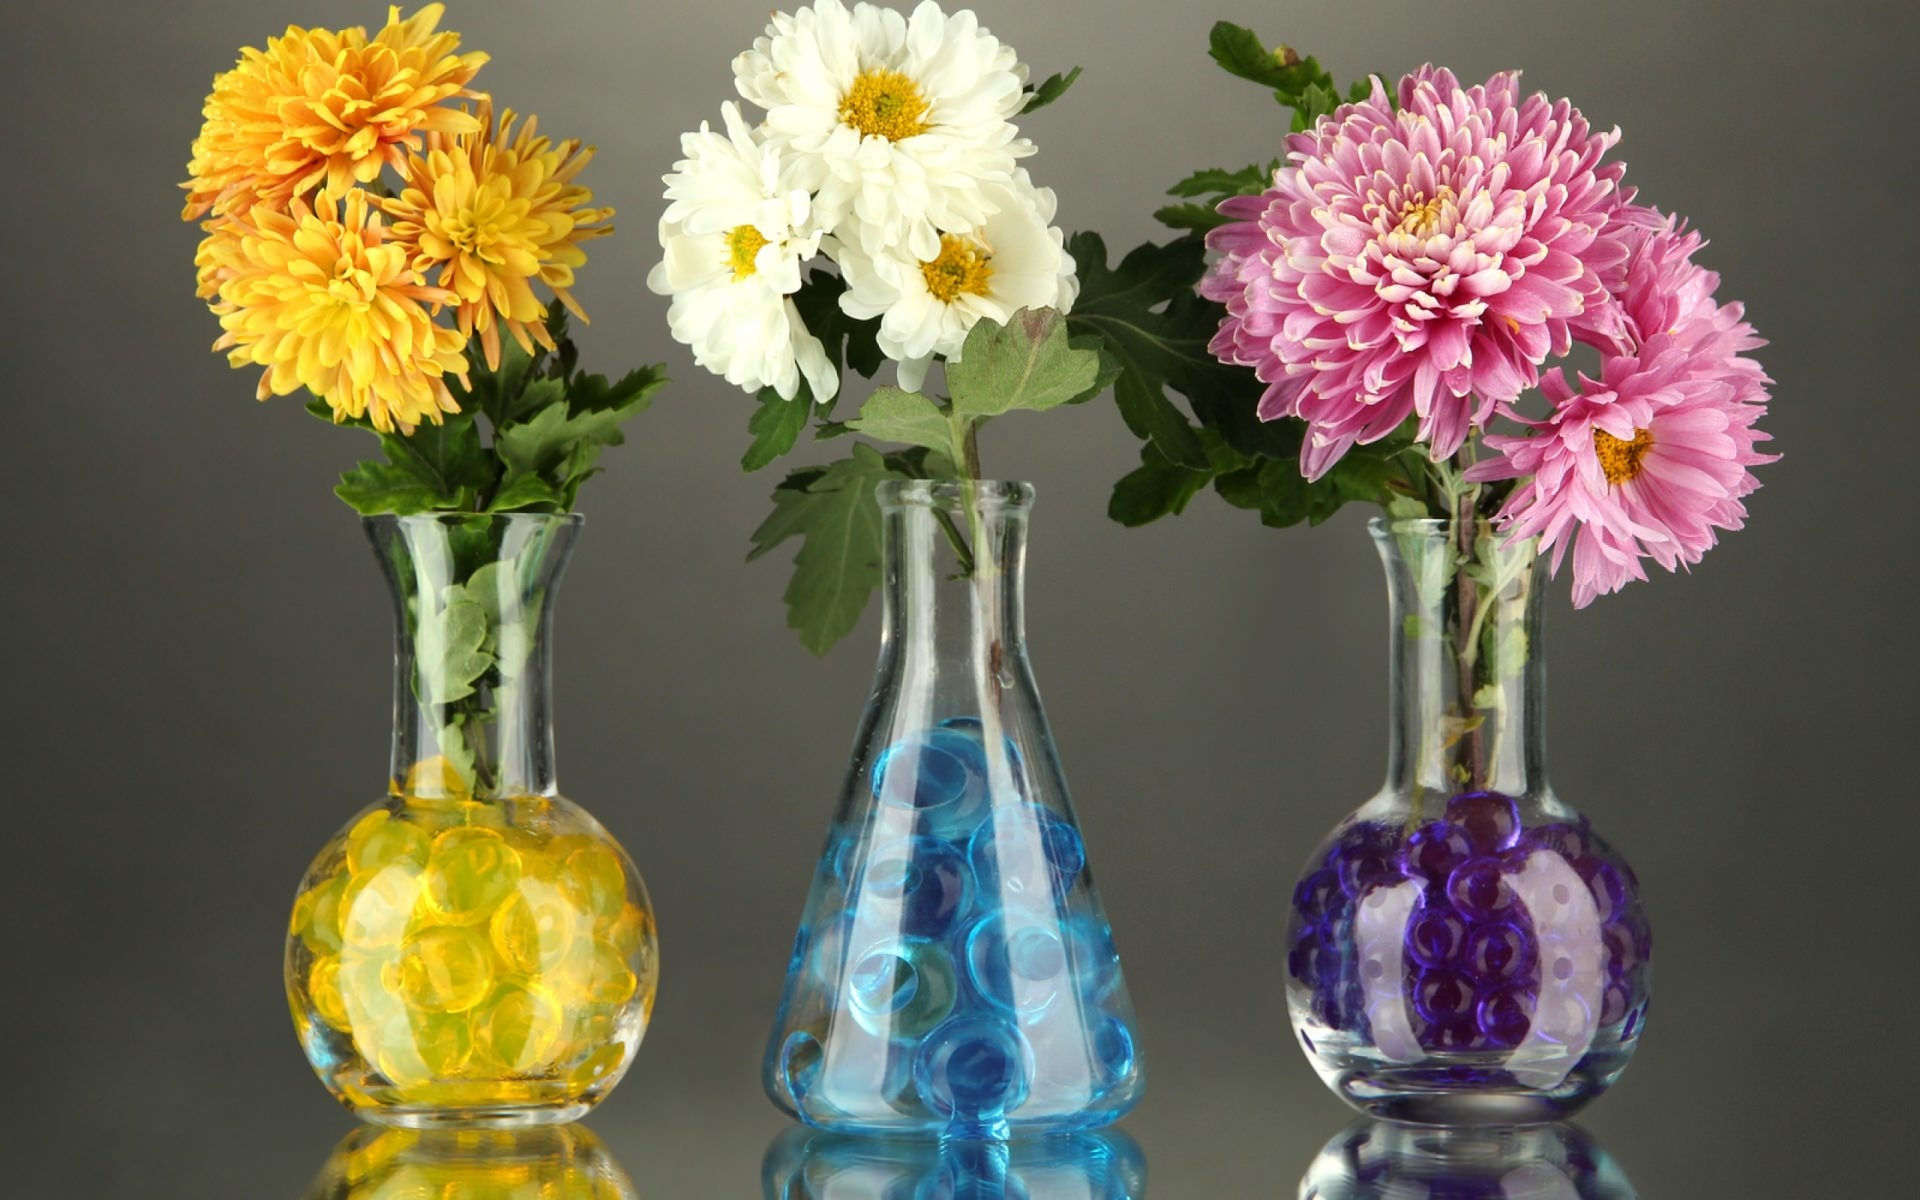 Flower Vase Widescreen Wallpaper